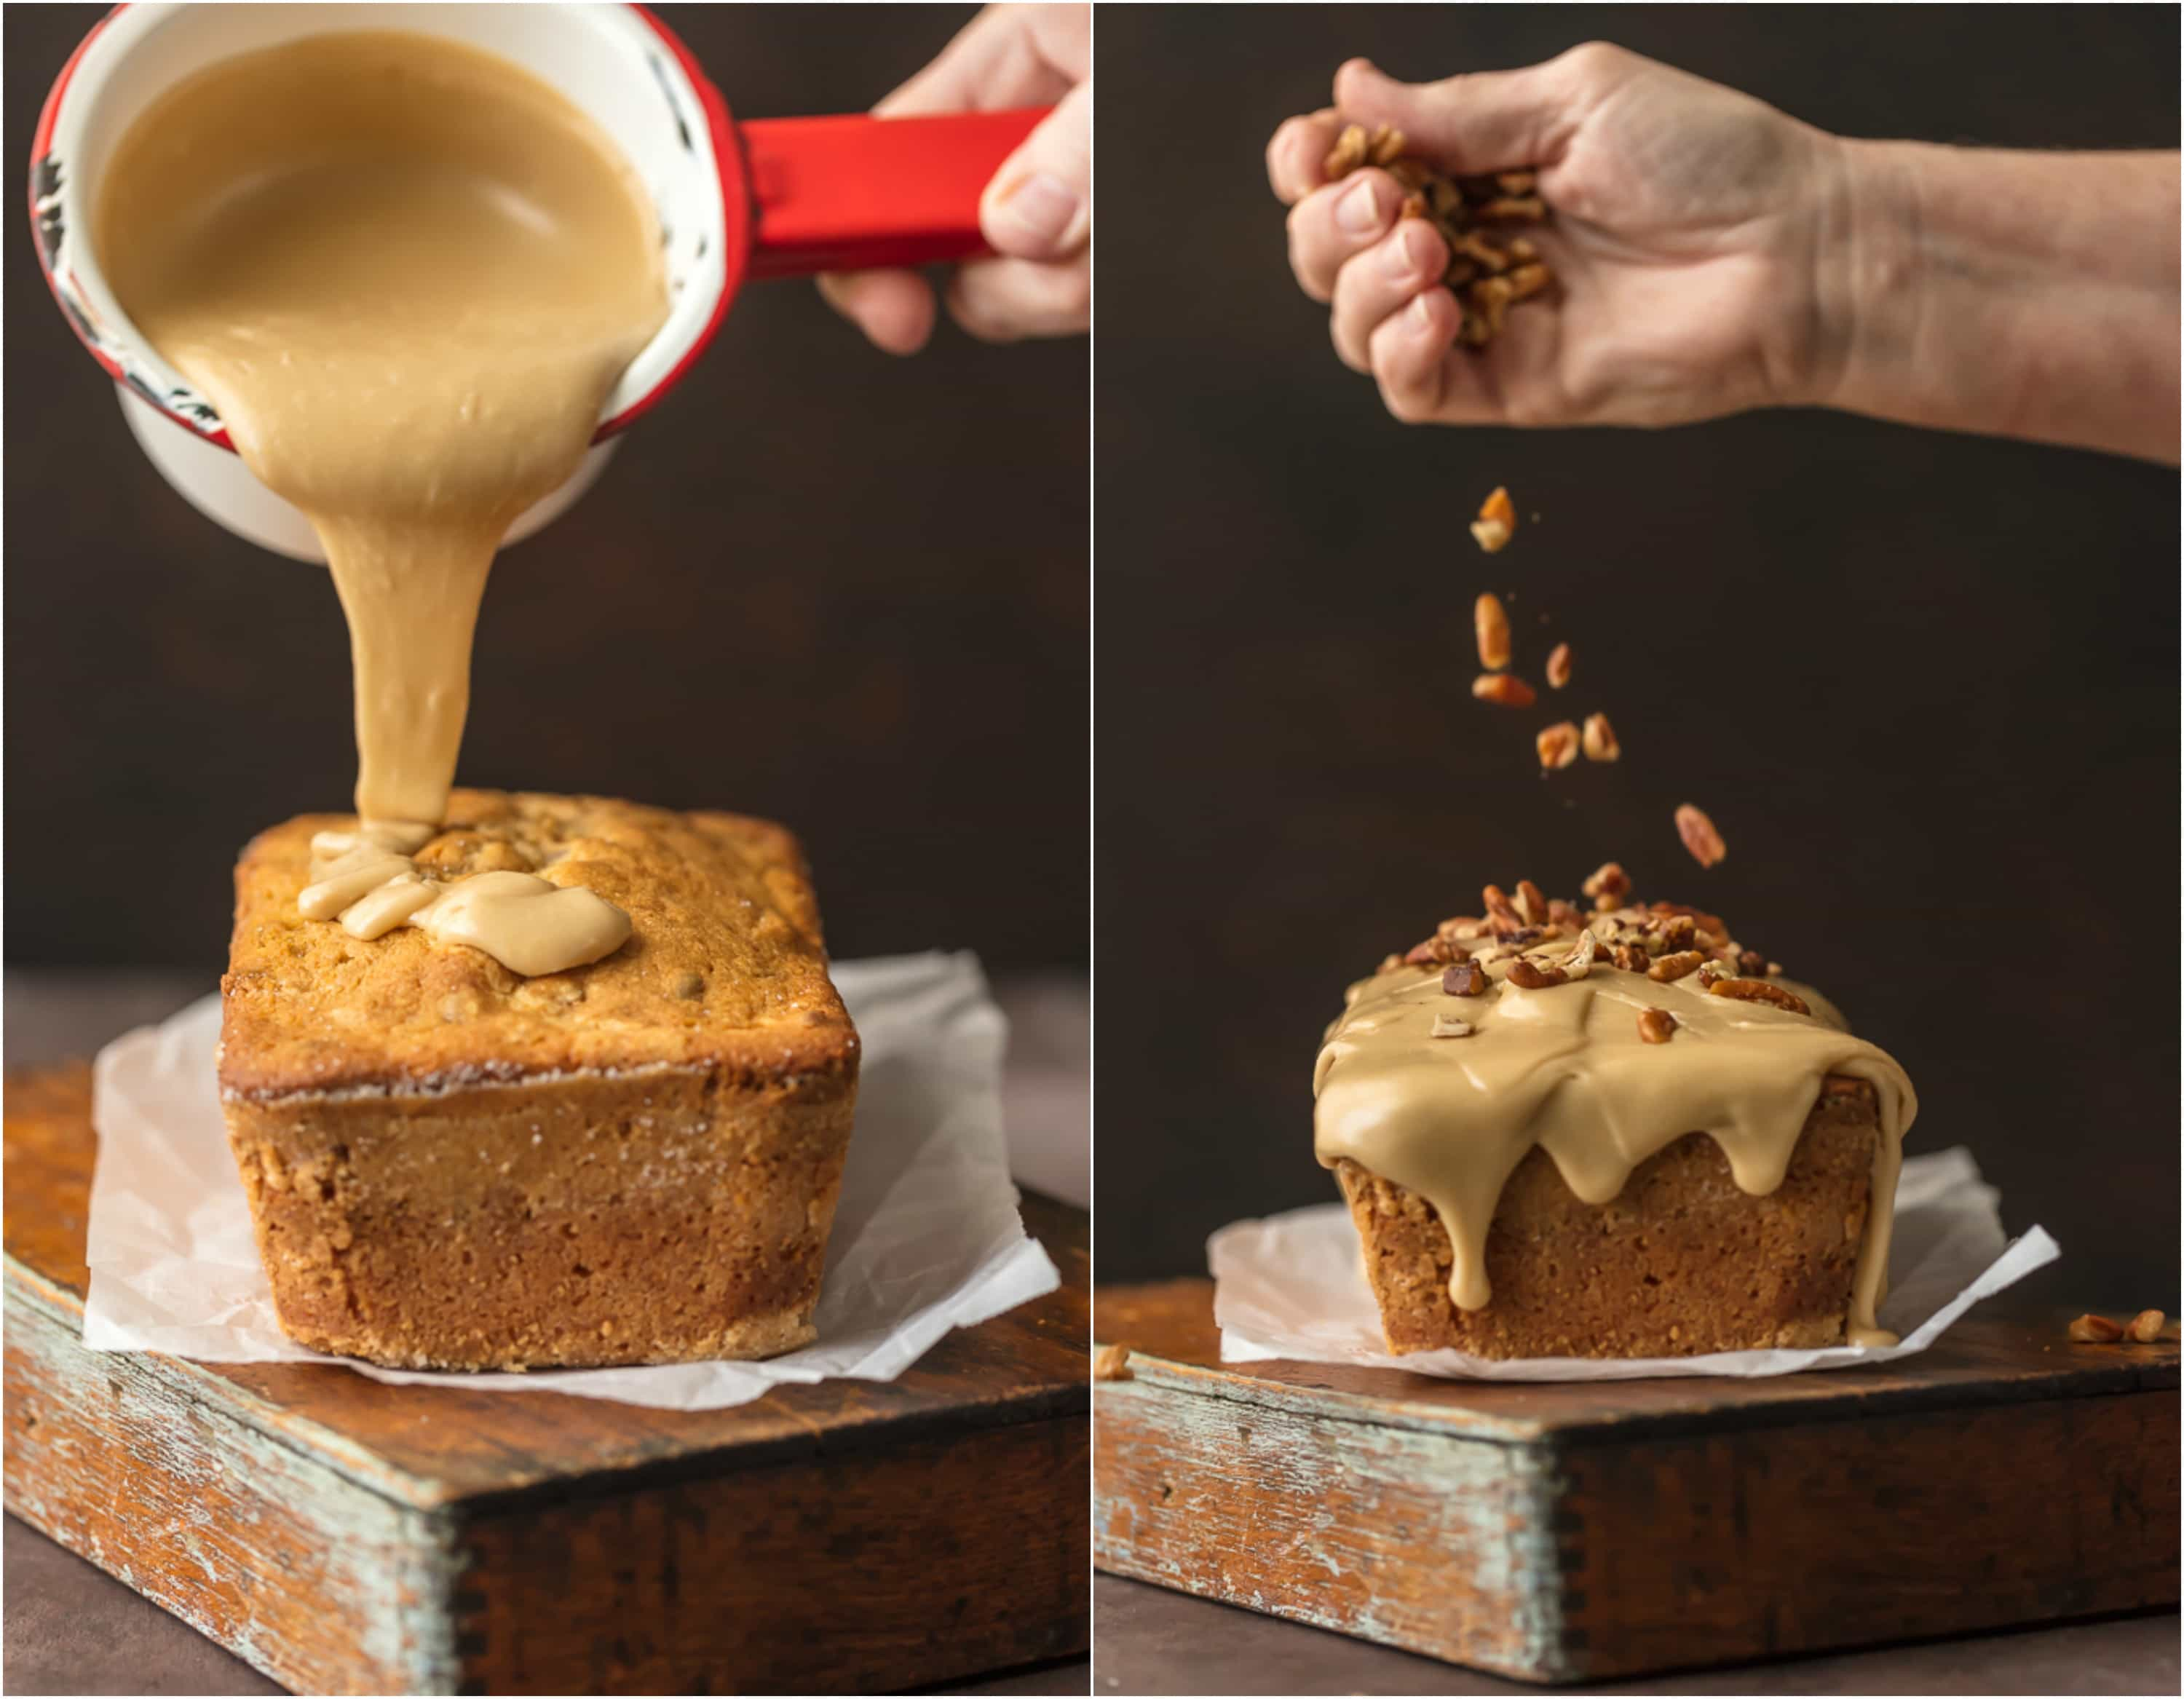 Brown Sugar Pound Cake with BROWN SUGAR ICING (let's be honest, it's caramel) is utterly delicious and just perfect for Fall. A simple classic that everyone loves. This makes a wonderful and delicious homemade gift for Christmas. The pecans add a little extra crunch to this sweet and amazing Easy Pound Cake Recipe.